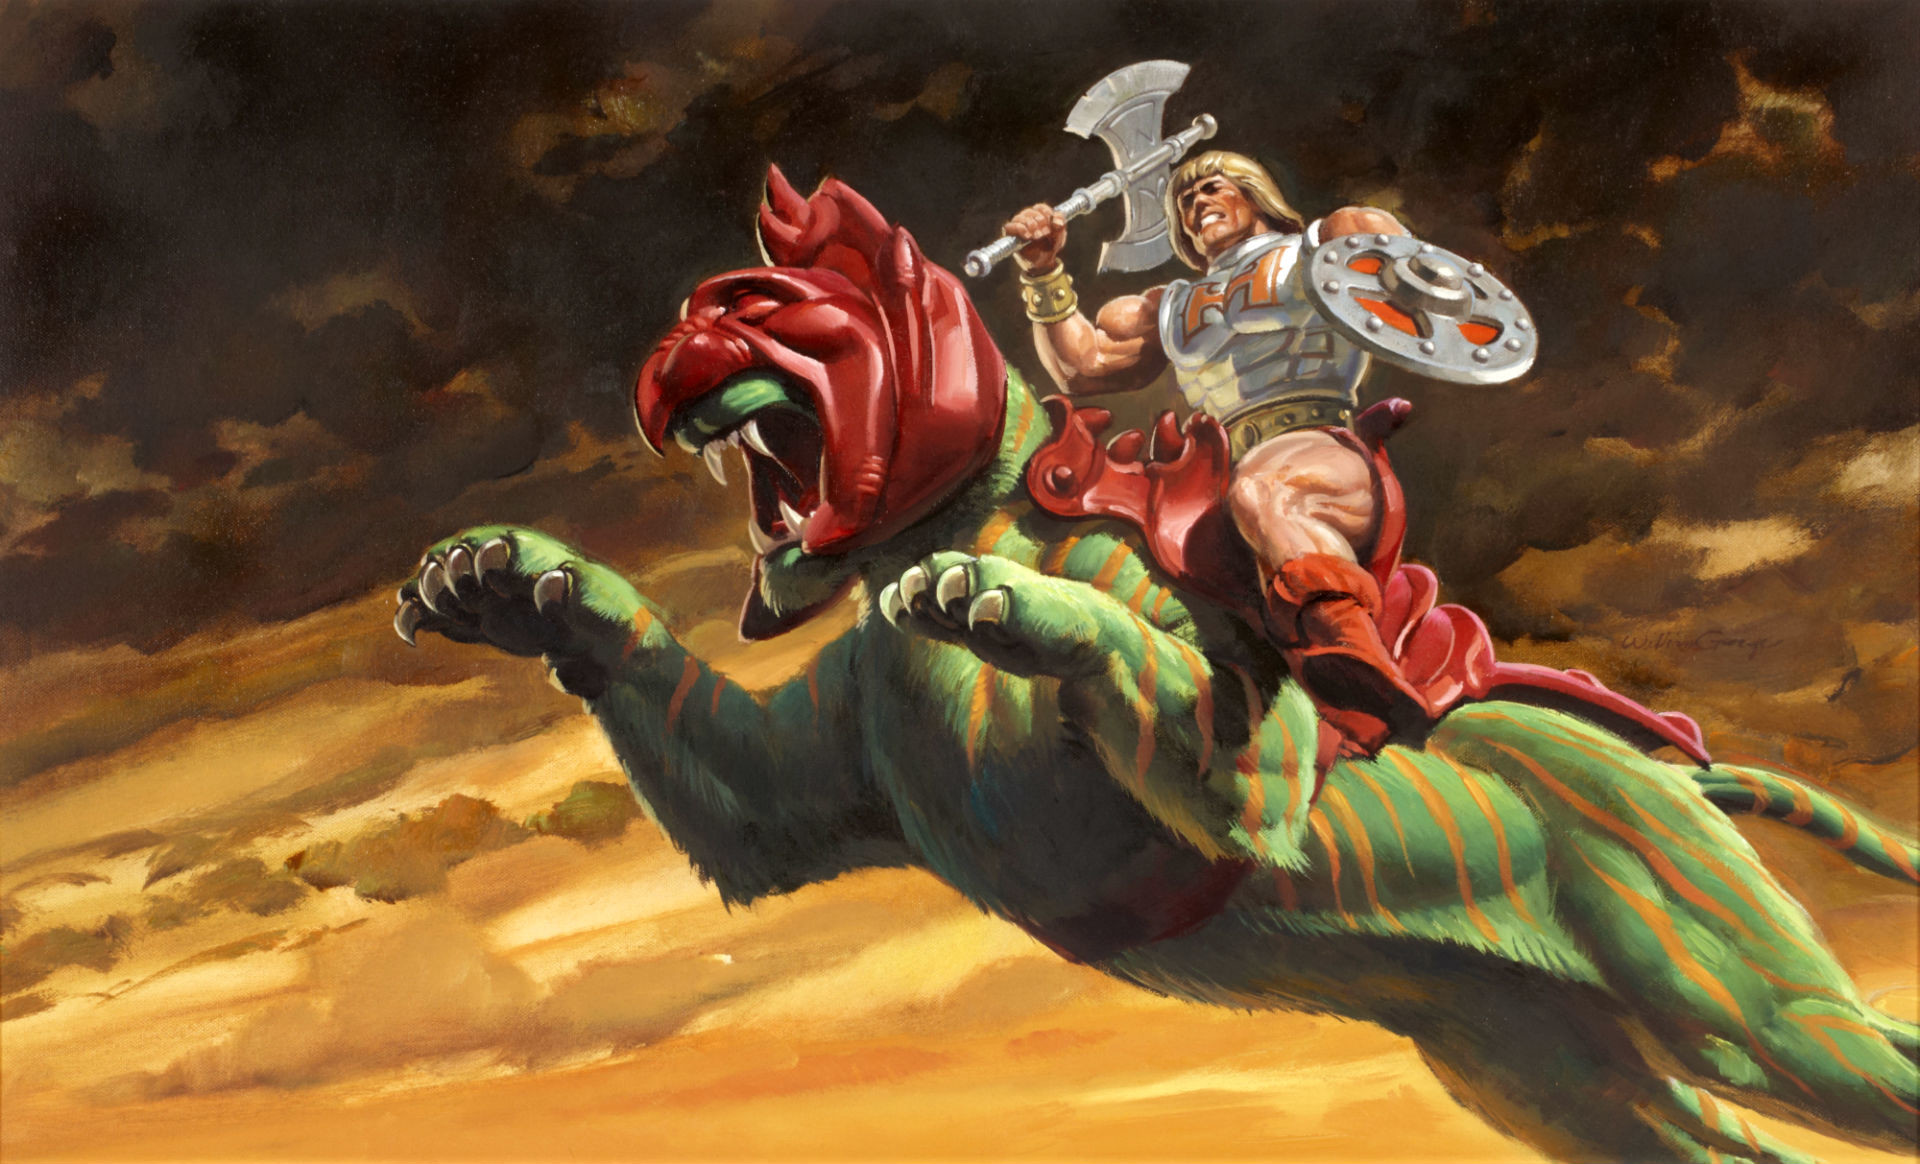 He-man And The Masters Of The Universe comics k wallpaper      85006   WallpaperUP